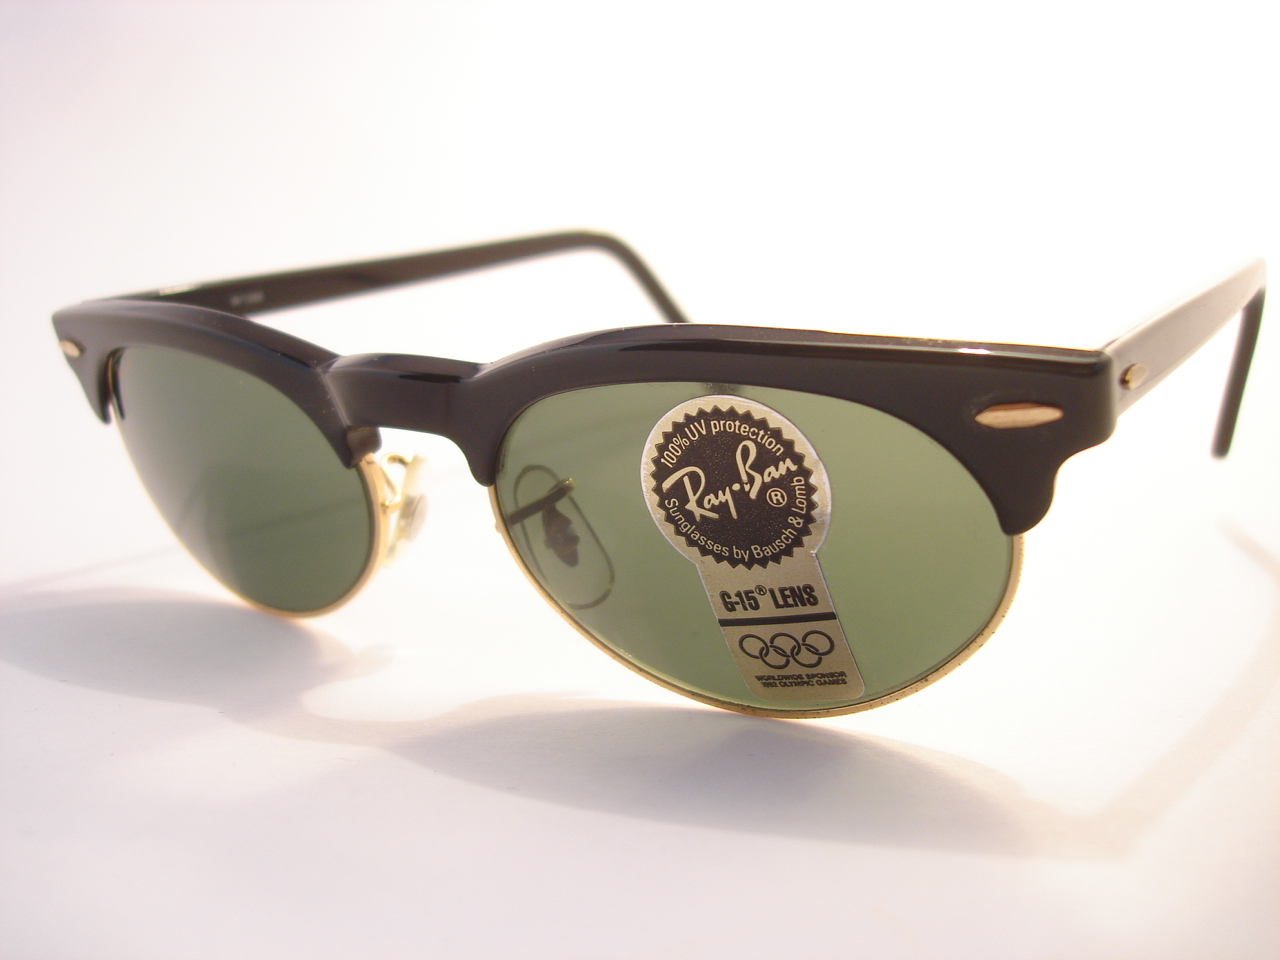 athletic strap for glasses  theothersideofthepillow: vintage RAY BAN by BAUSCH AND LOMB B\u0026L ...